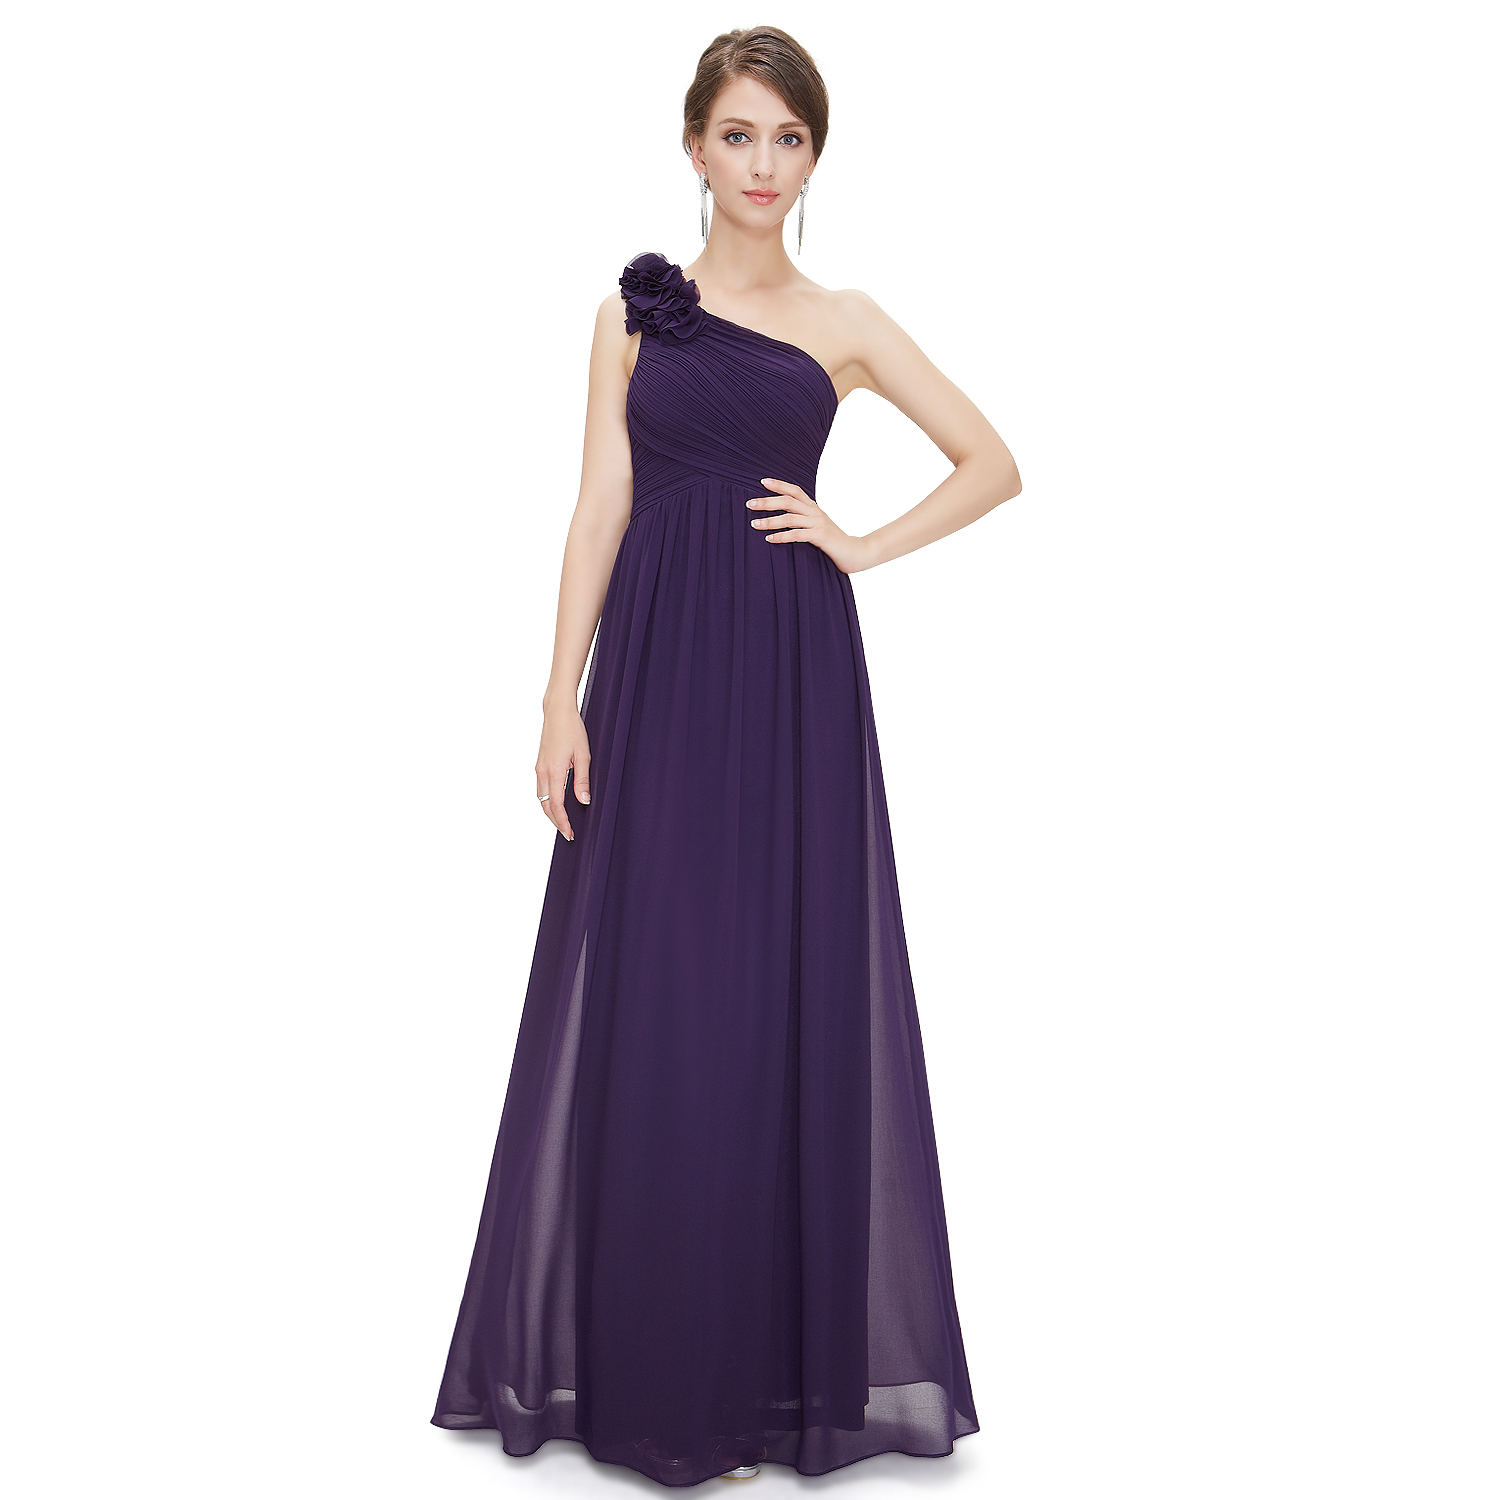 One Shoulder Dress. Showing just a hint of skin, one shoulder dresses are the perfect compromise between sexy and elegant. A one shoulder dress works well for any dressy occasion, and you can easily change the look of a one shoulder dress by adding the right accessories.